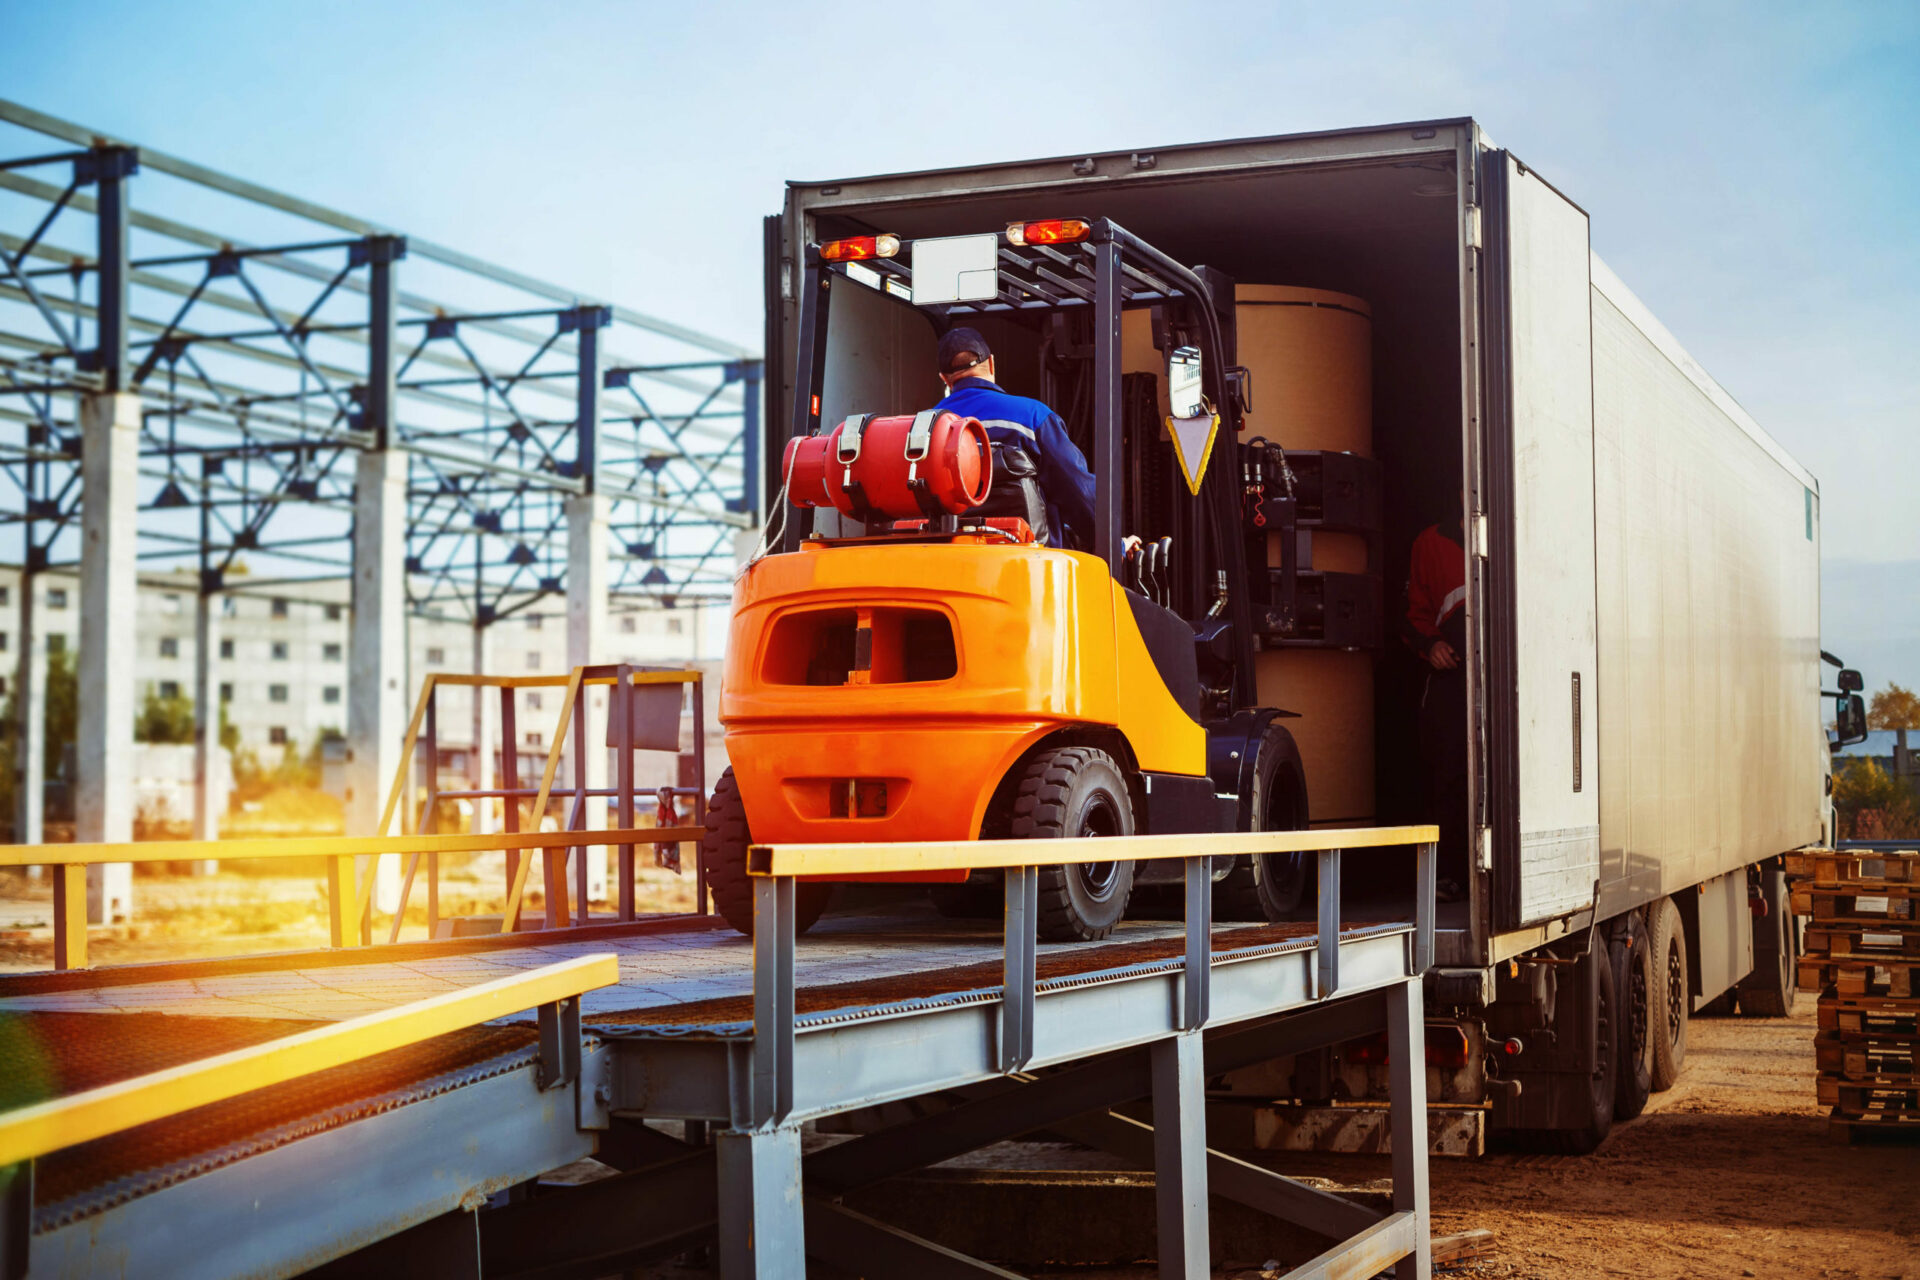 Forklift,Is,Putting,Cargo,From,Warehouse,To,Truck,Outdoors